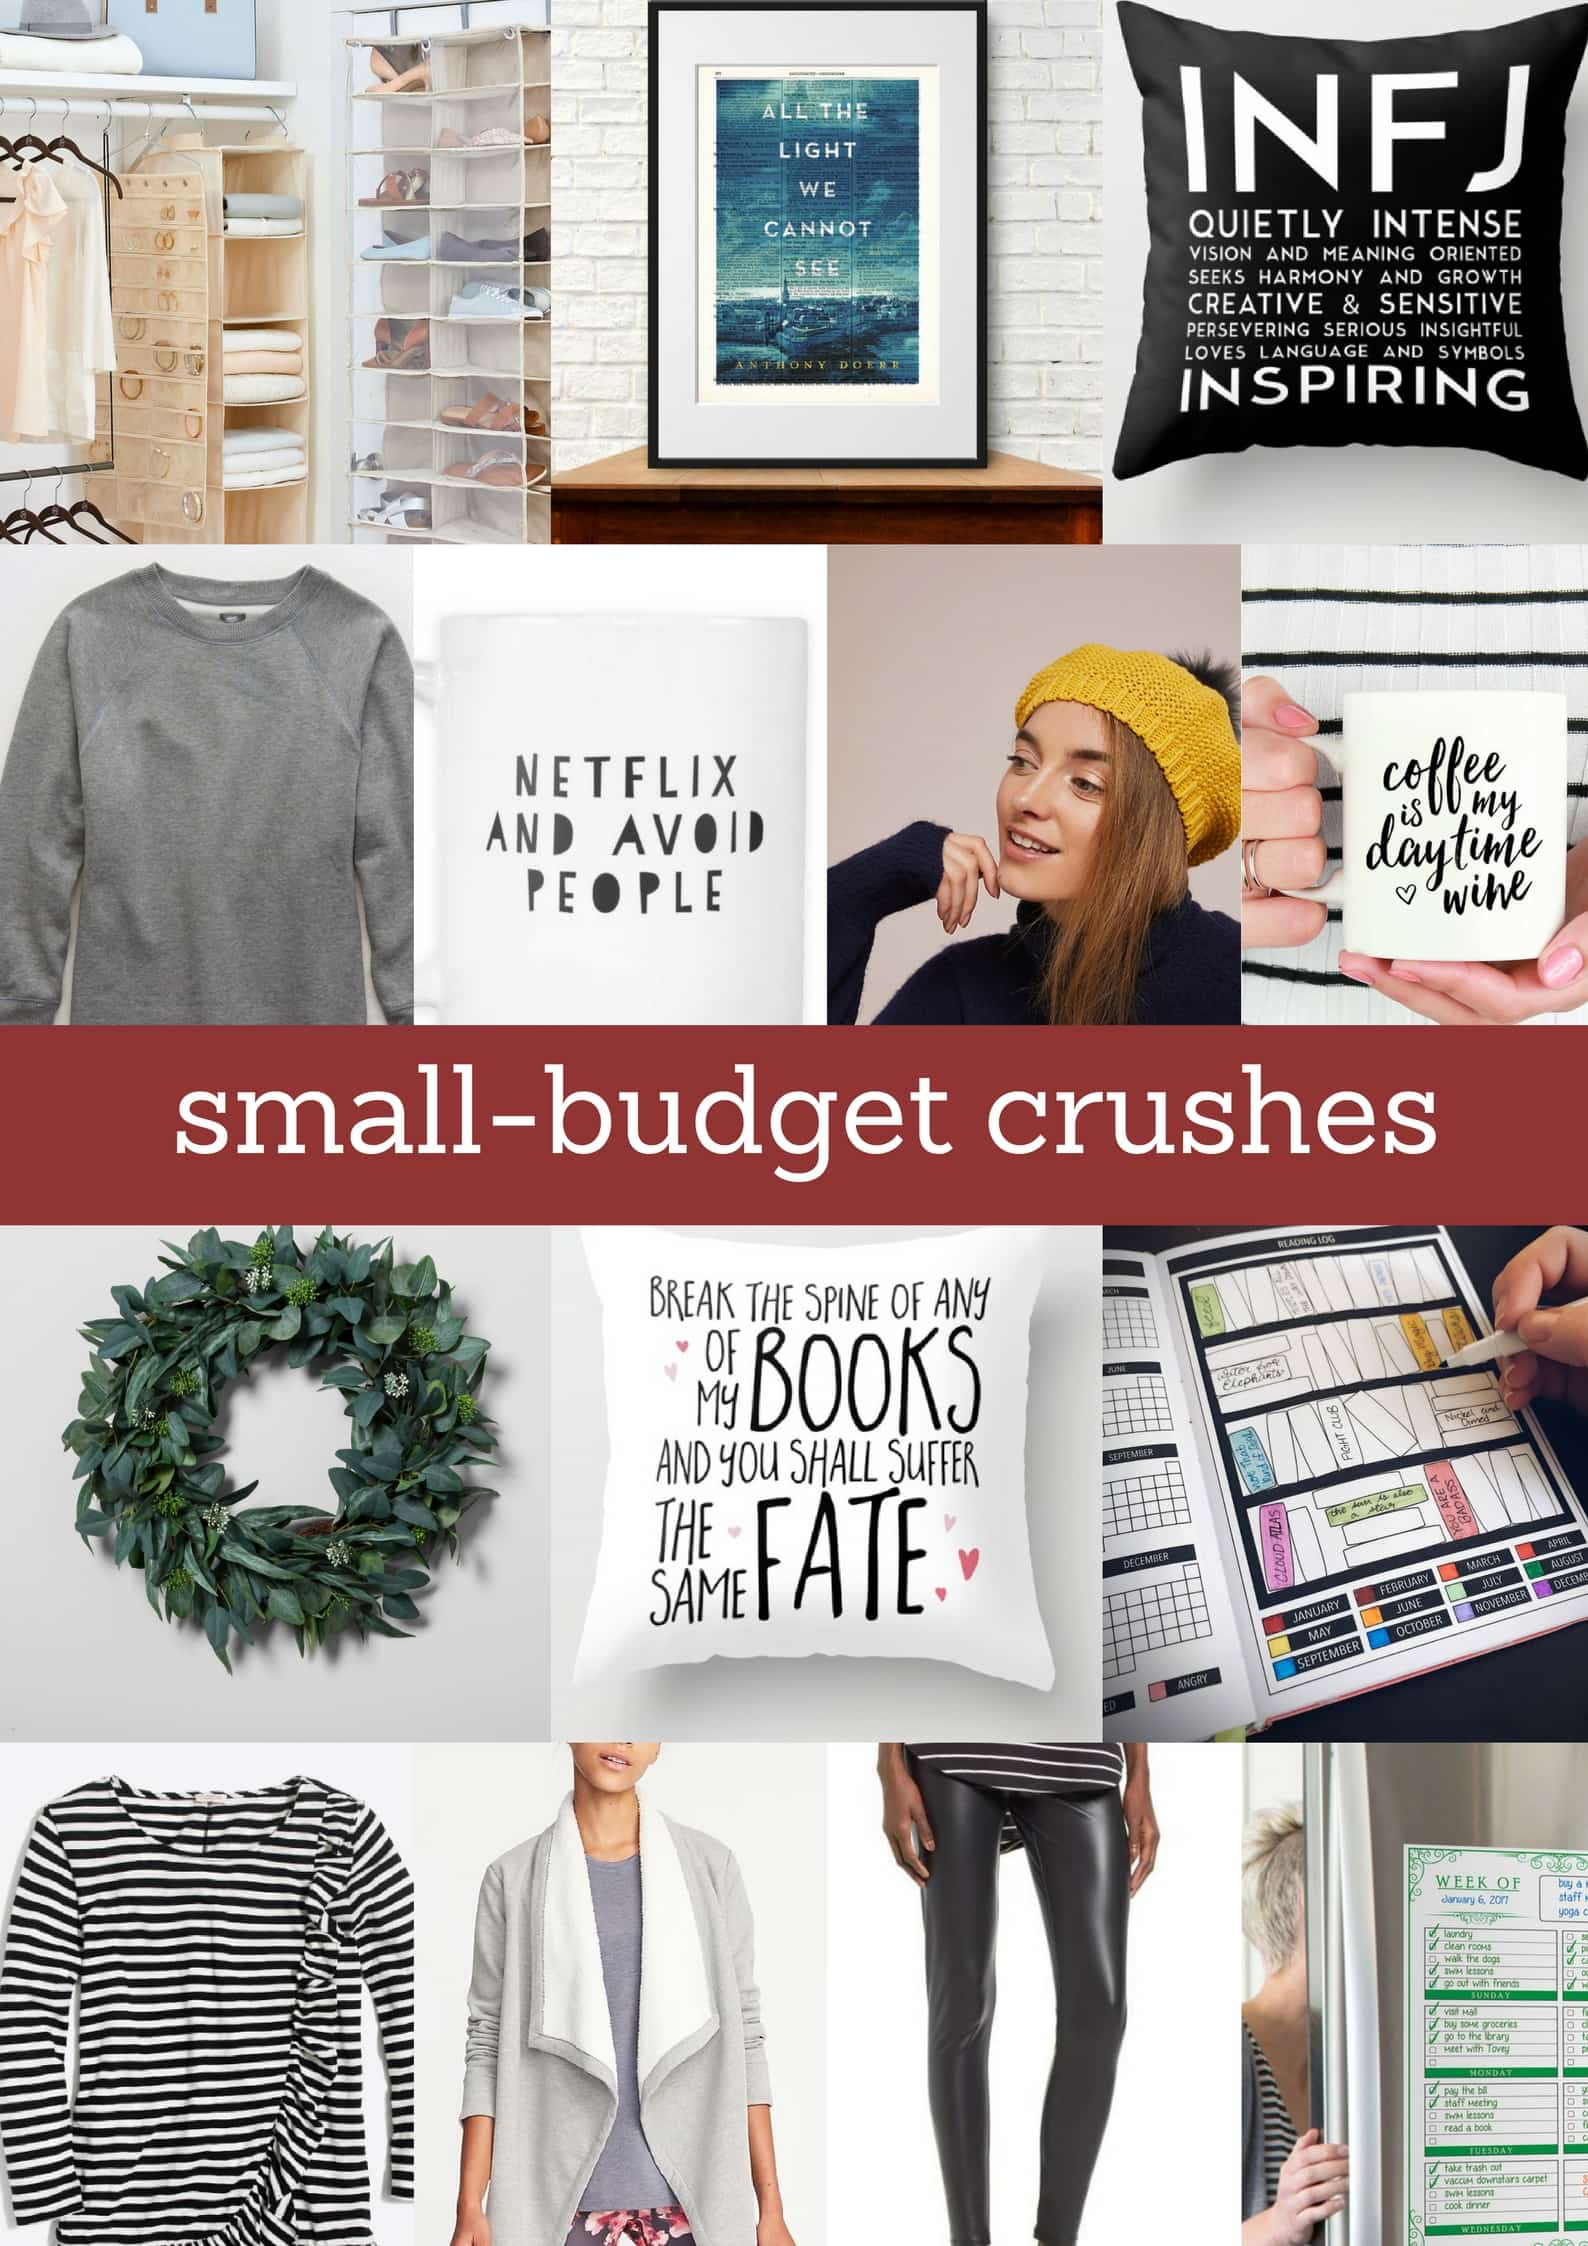 small-budget crushes